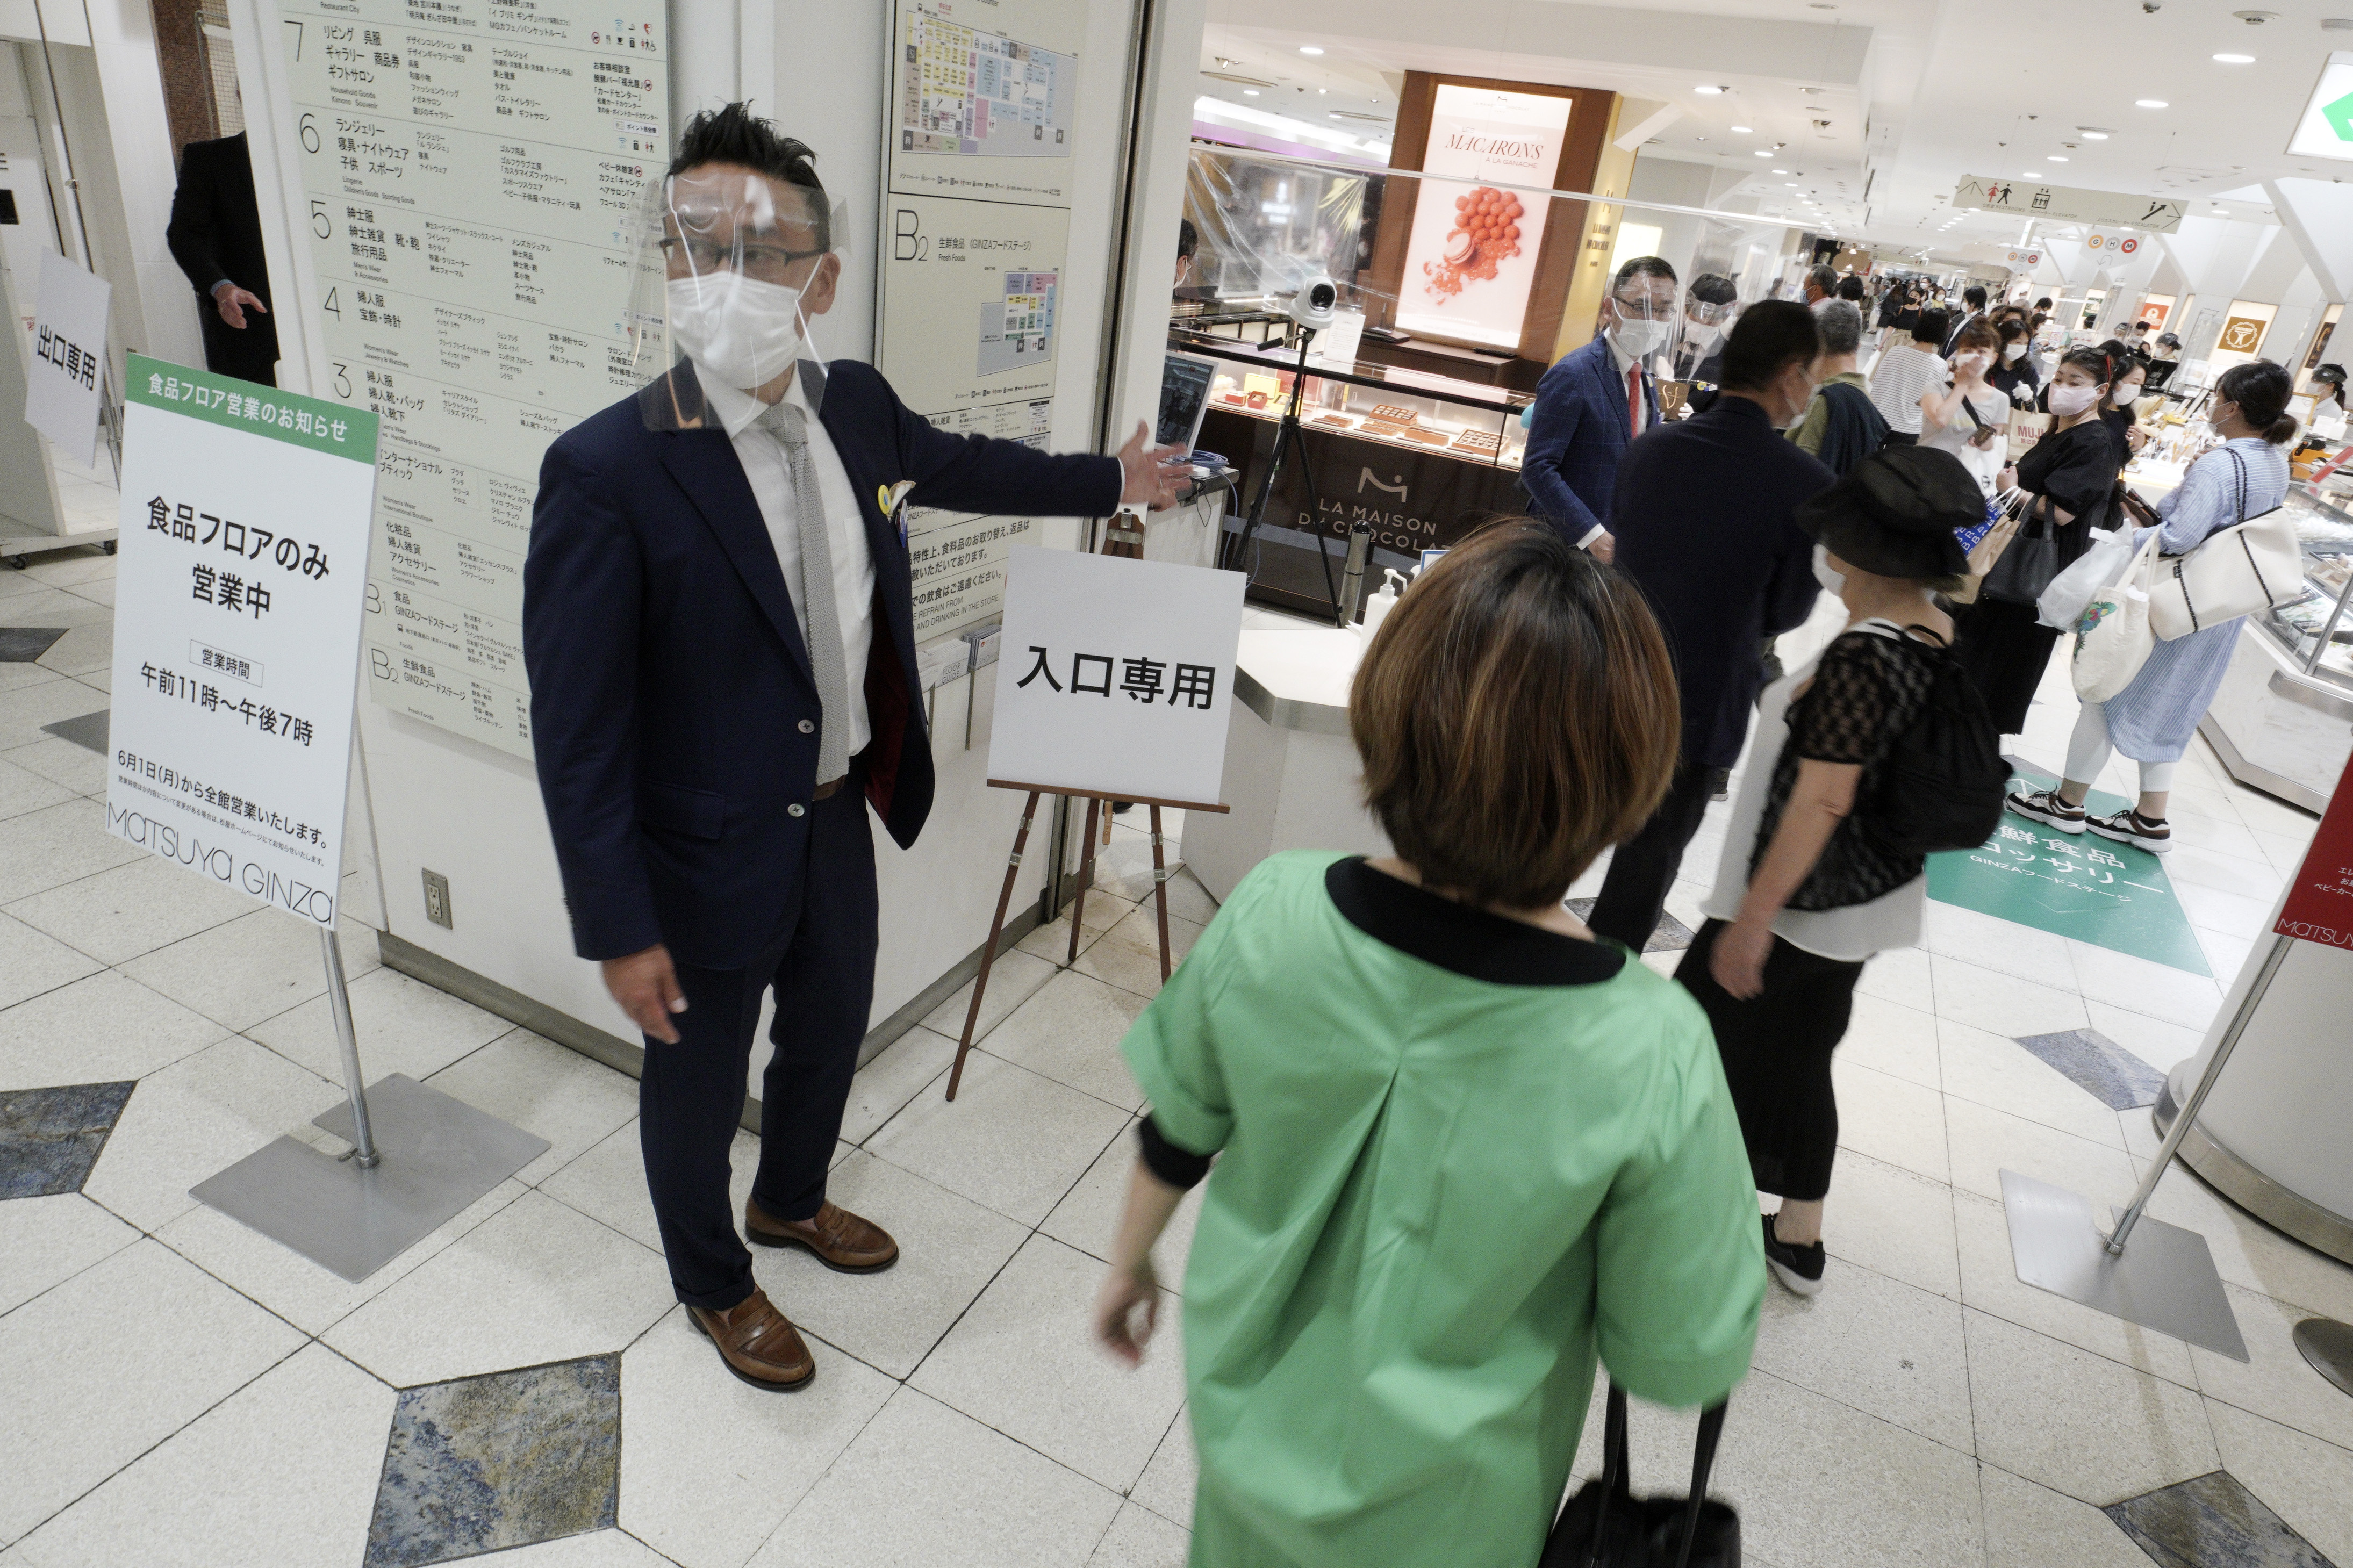 """Shoppers maintain a safe social distance between each other as they wait in line to enter a food section of the Matsuya Ginza department store which partially reopens Monday, May 25, 2020, in Tokyo. Japan's Prime Minister Shinzo Abe is expected to remove a coronavirus state of emergency from Tokyo and four other remaining prefectures later in the day. Japanese words read as """"For entrance only."""" (AP Photo/Eugene Hoshiko)"""